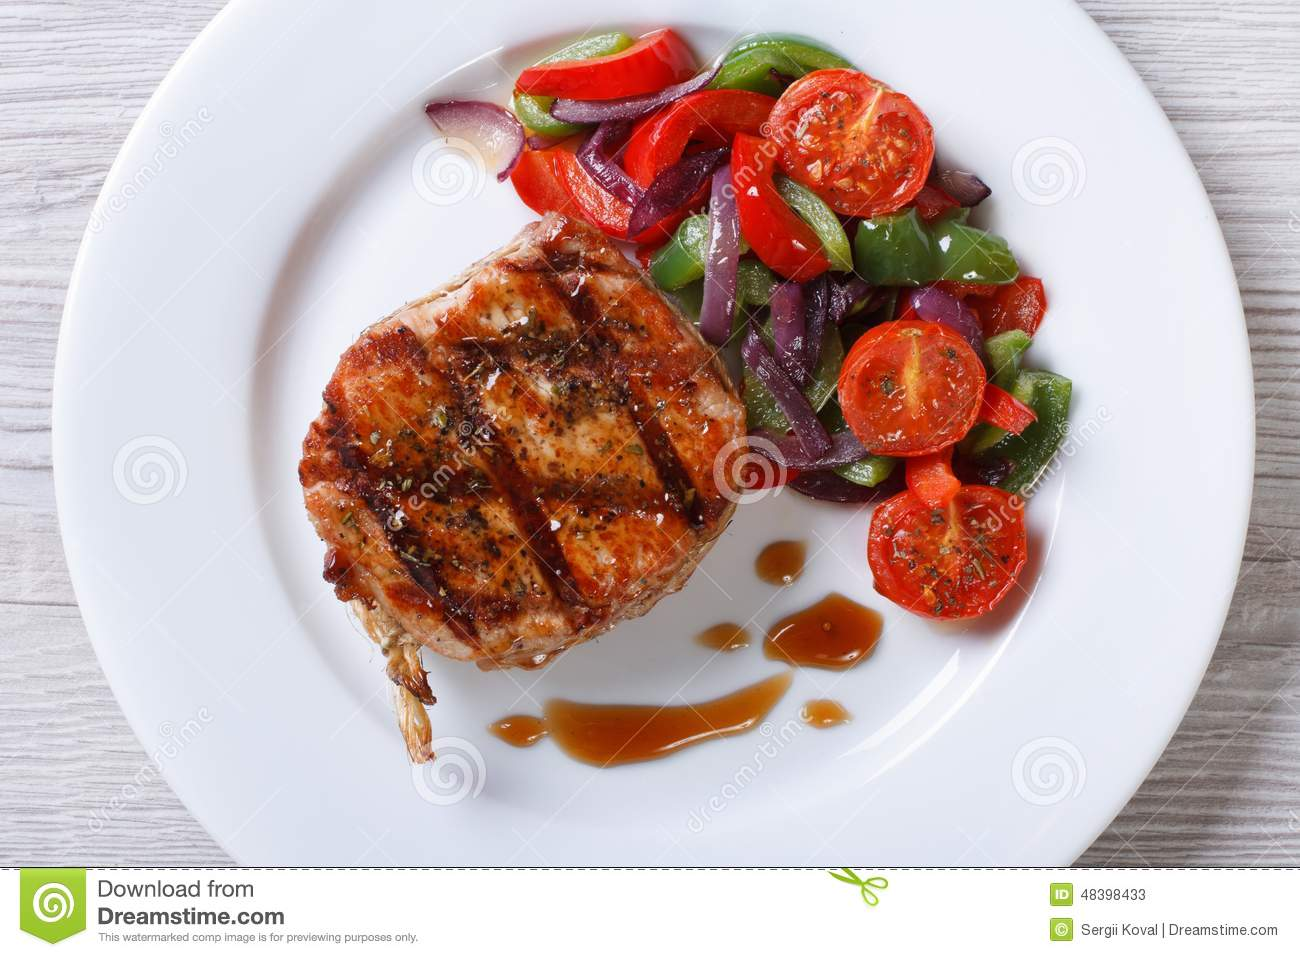 Plate With Food Top View Pork Steak With Vegetables And Sauce Top View Horizontal